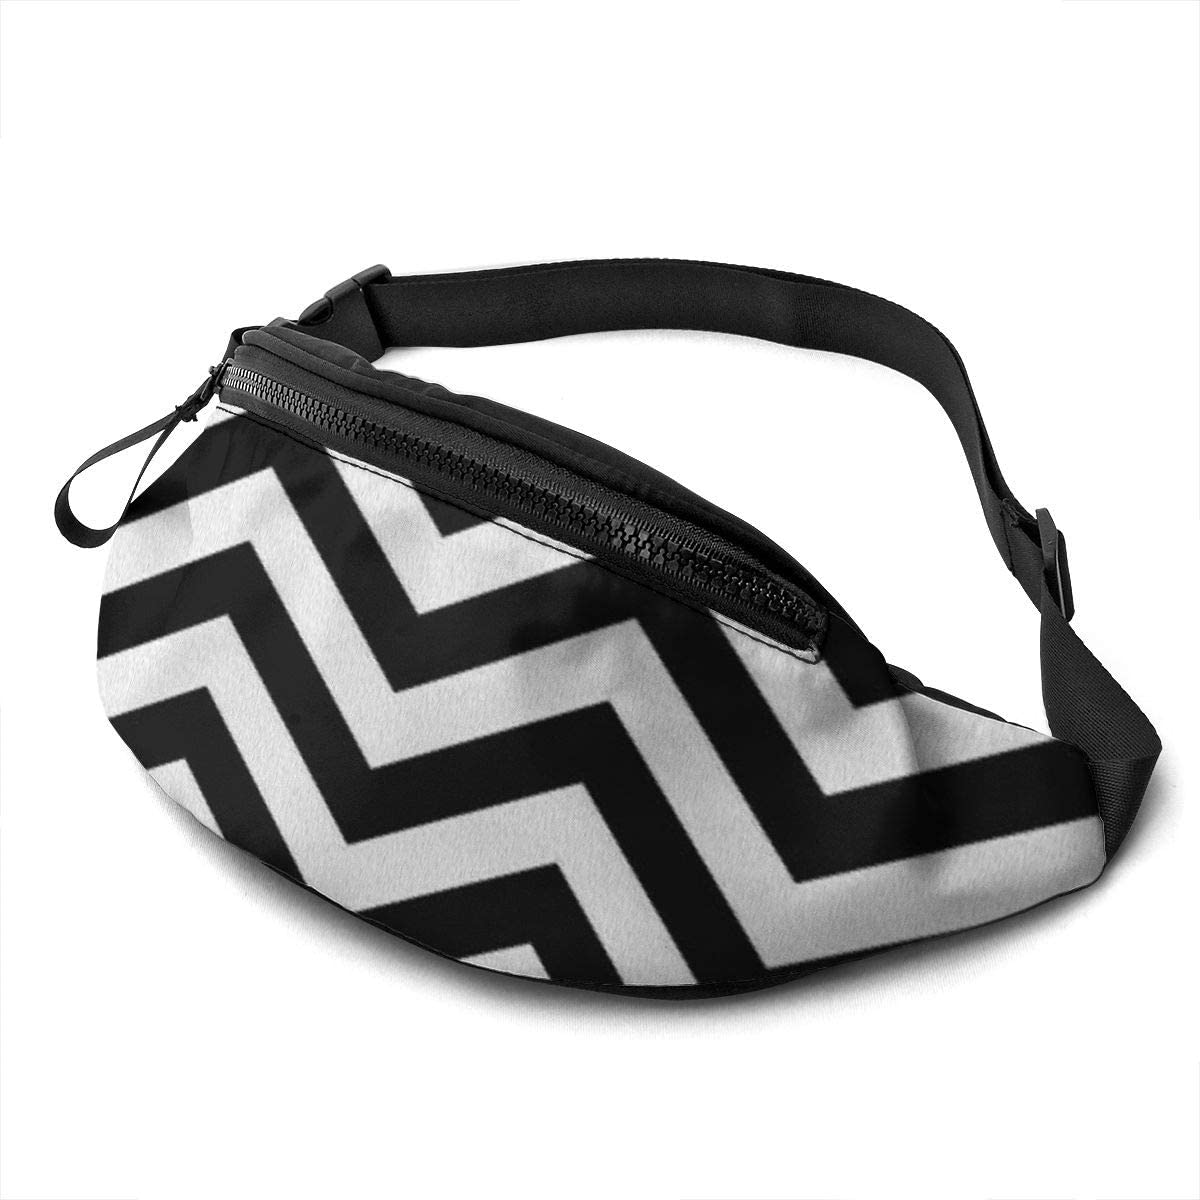 White Lodge Flooring Fanny Pack for Men Women Waist Pack Bag with Headphone Jack and Zipper Pockets Adjustable Straps